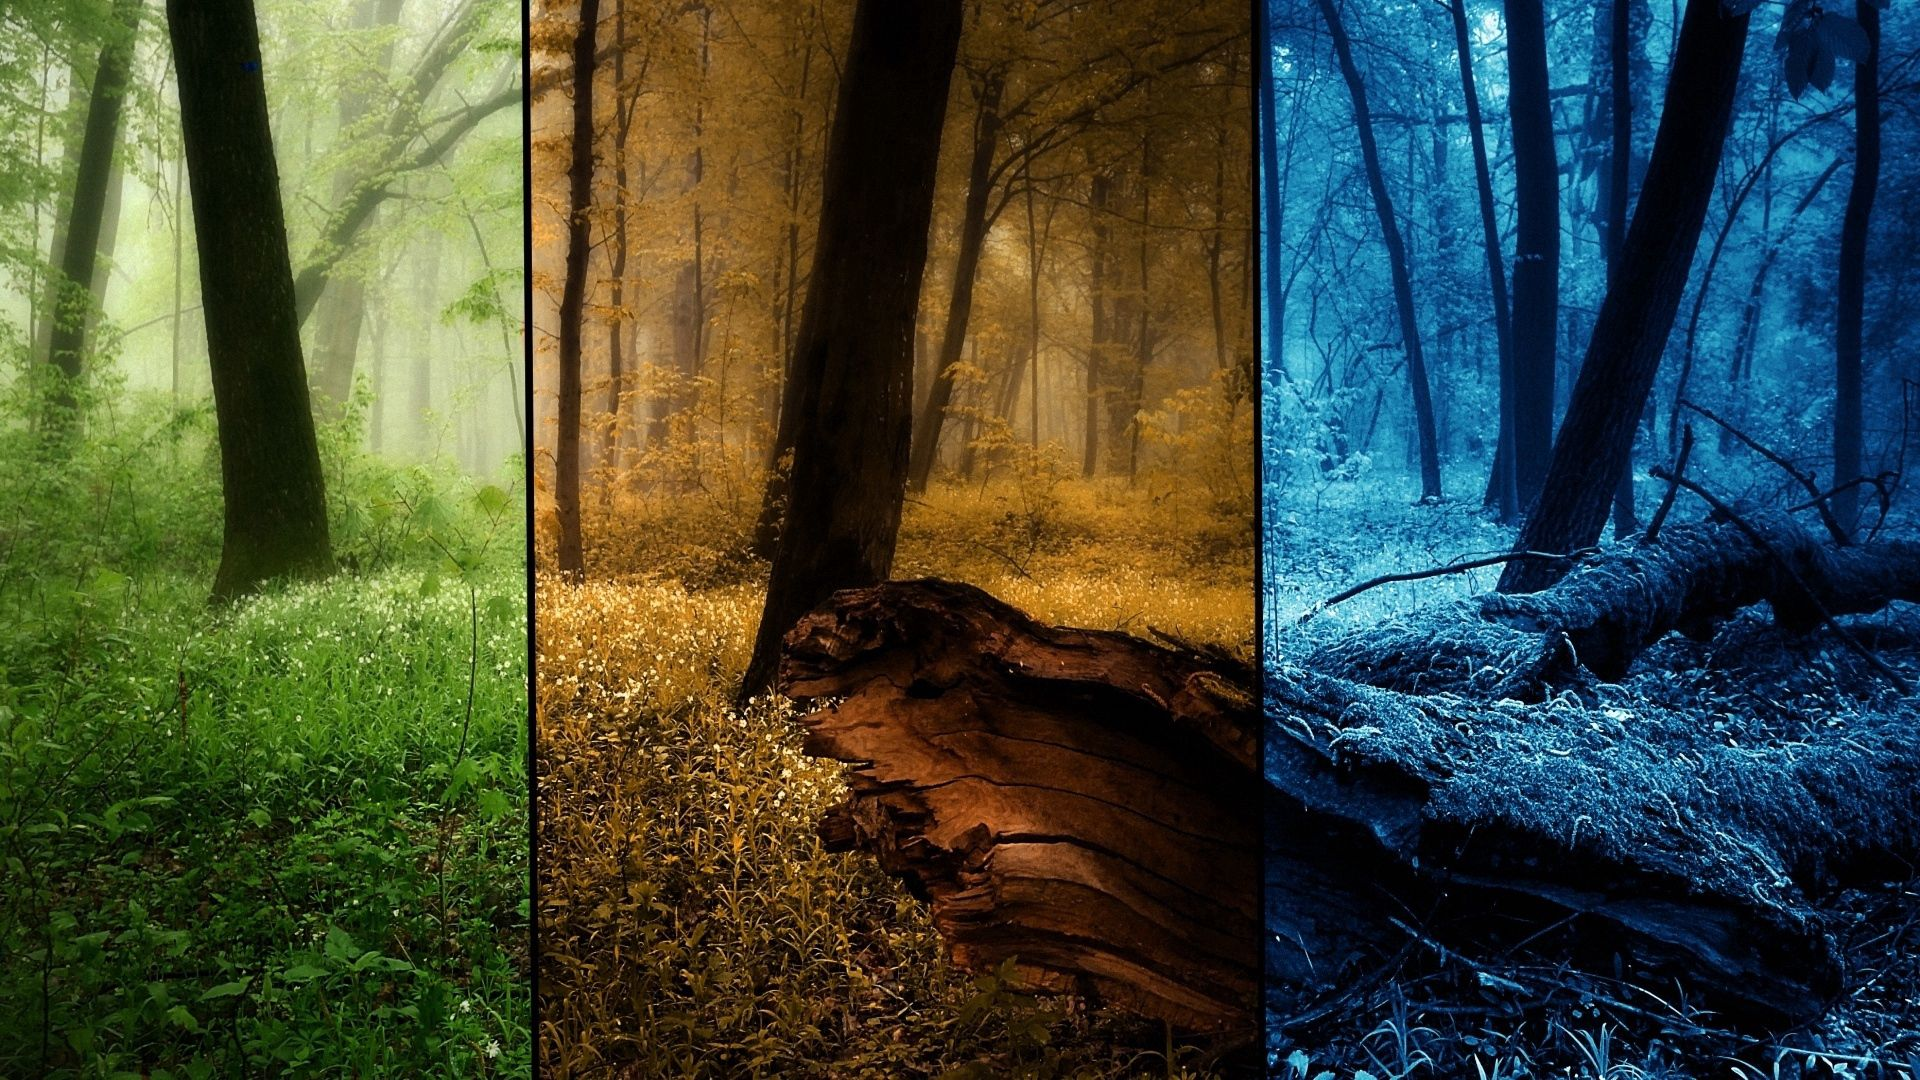 141915 download wallpaper Nature, Forest, Seasons, Pictures, Trees, Summer, Autumn, Winter screensavers and pictures for free